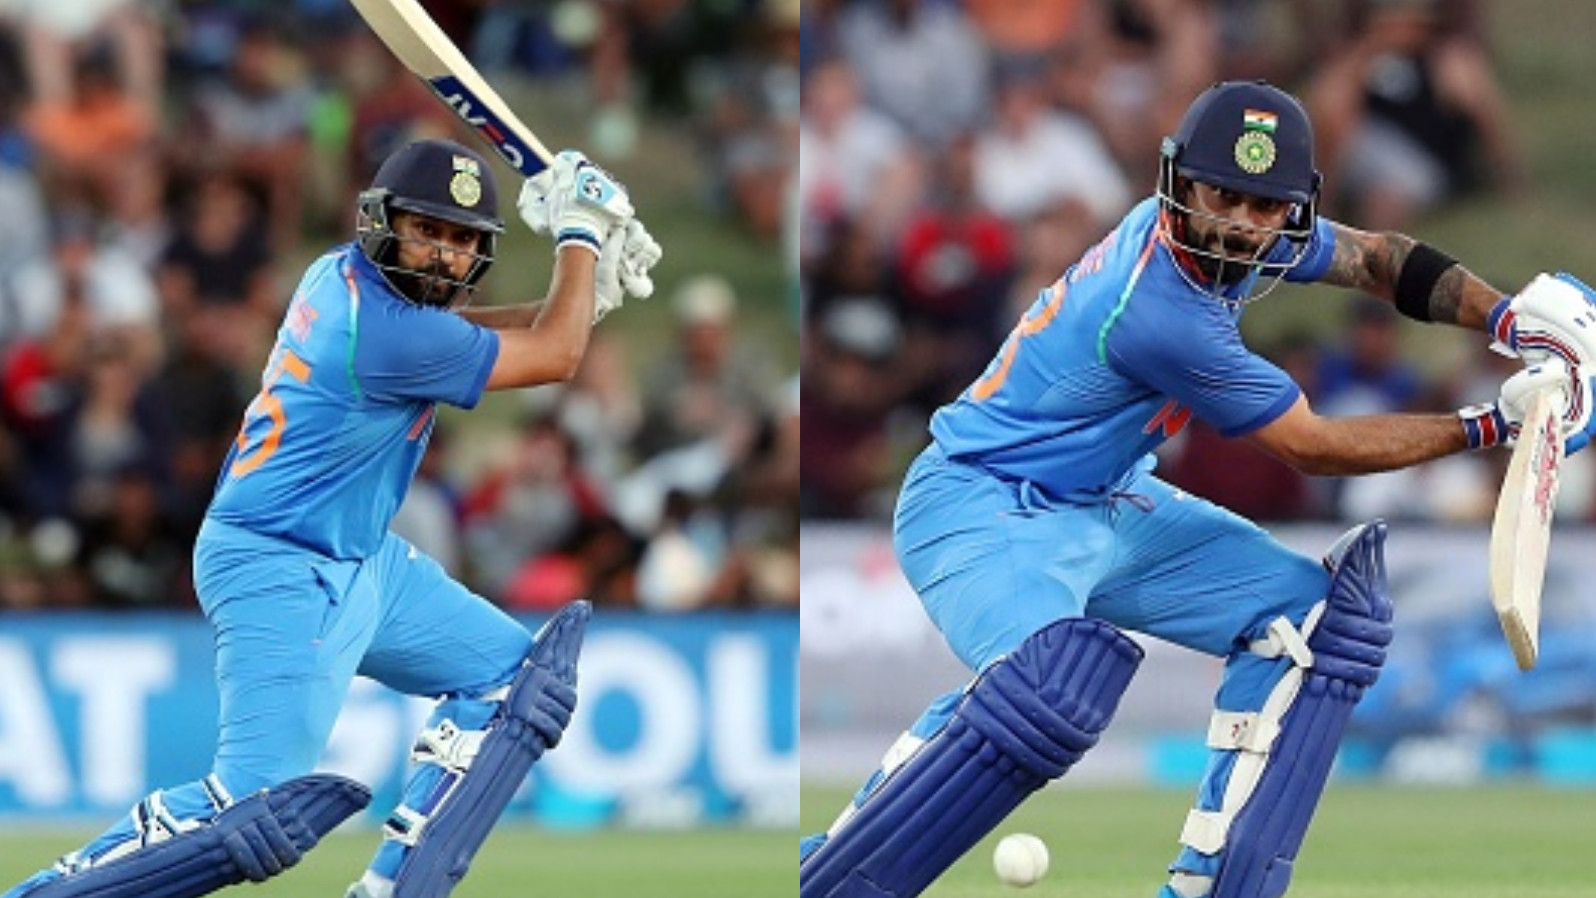 NZ v IND 2019: 3rd ODI – India goes 3-0 up with a 7-wicket win; Rohit-Kohli make fifties